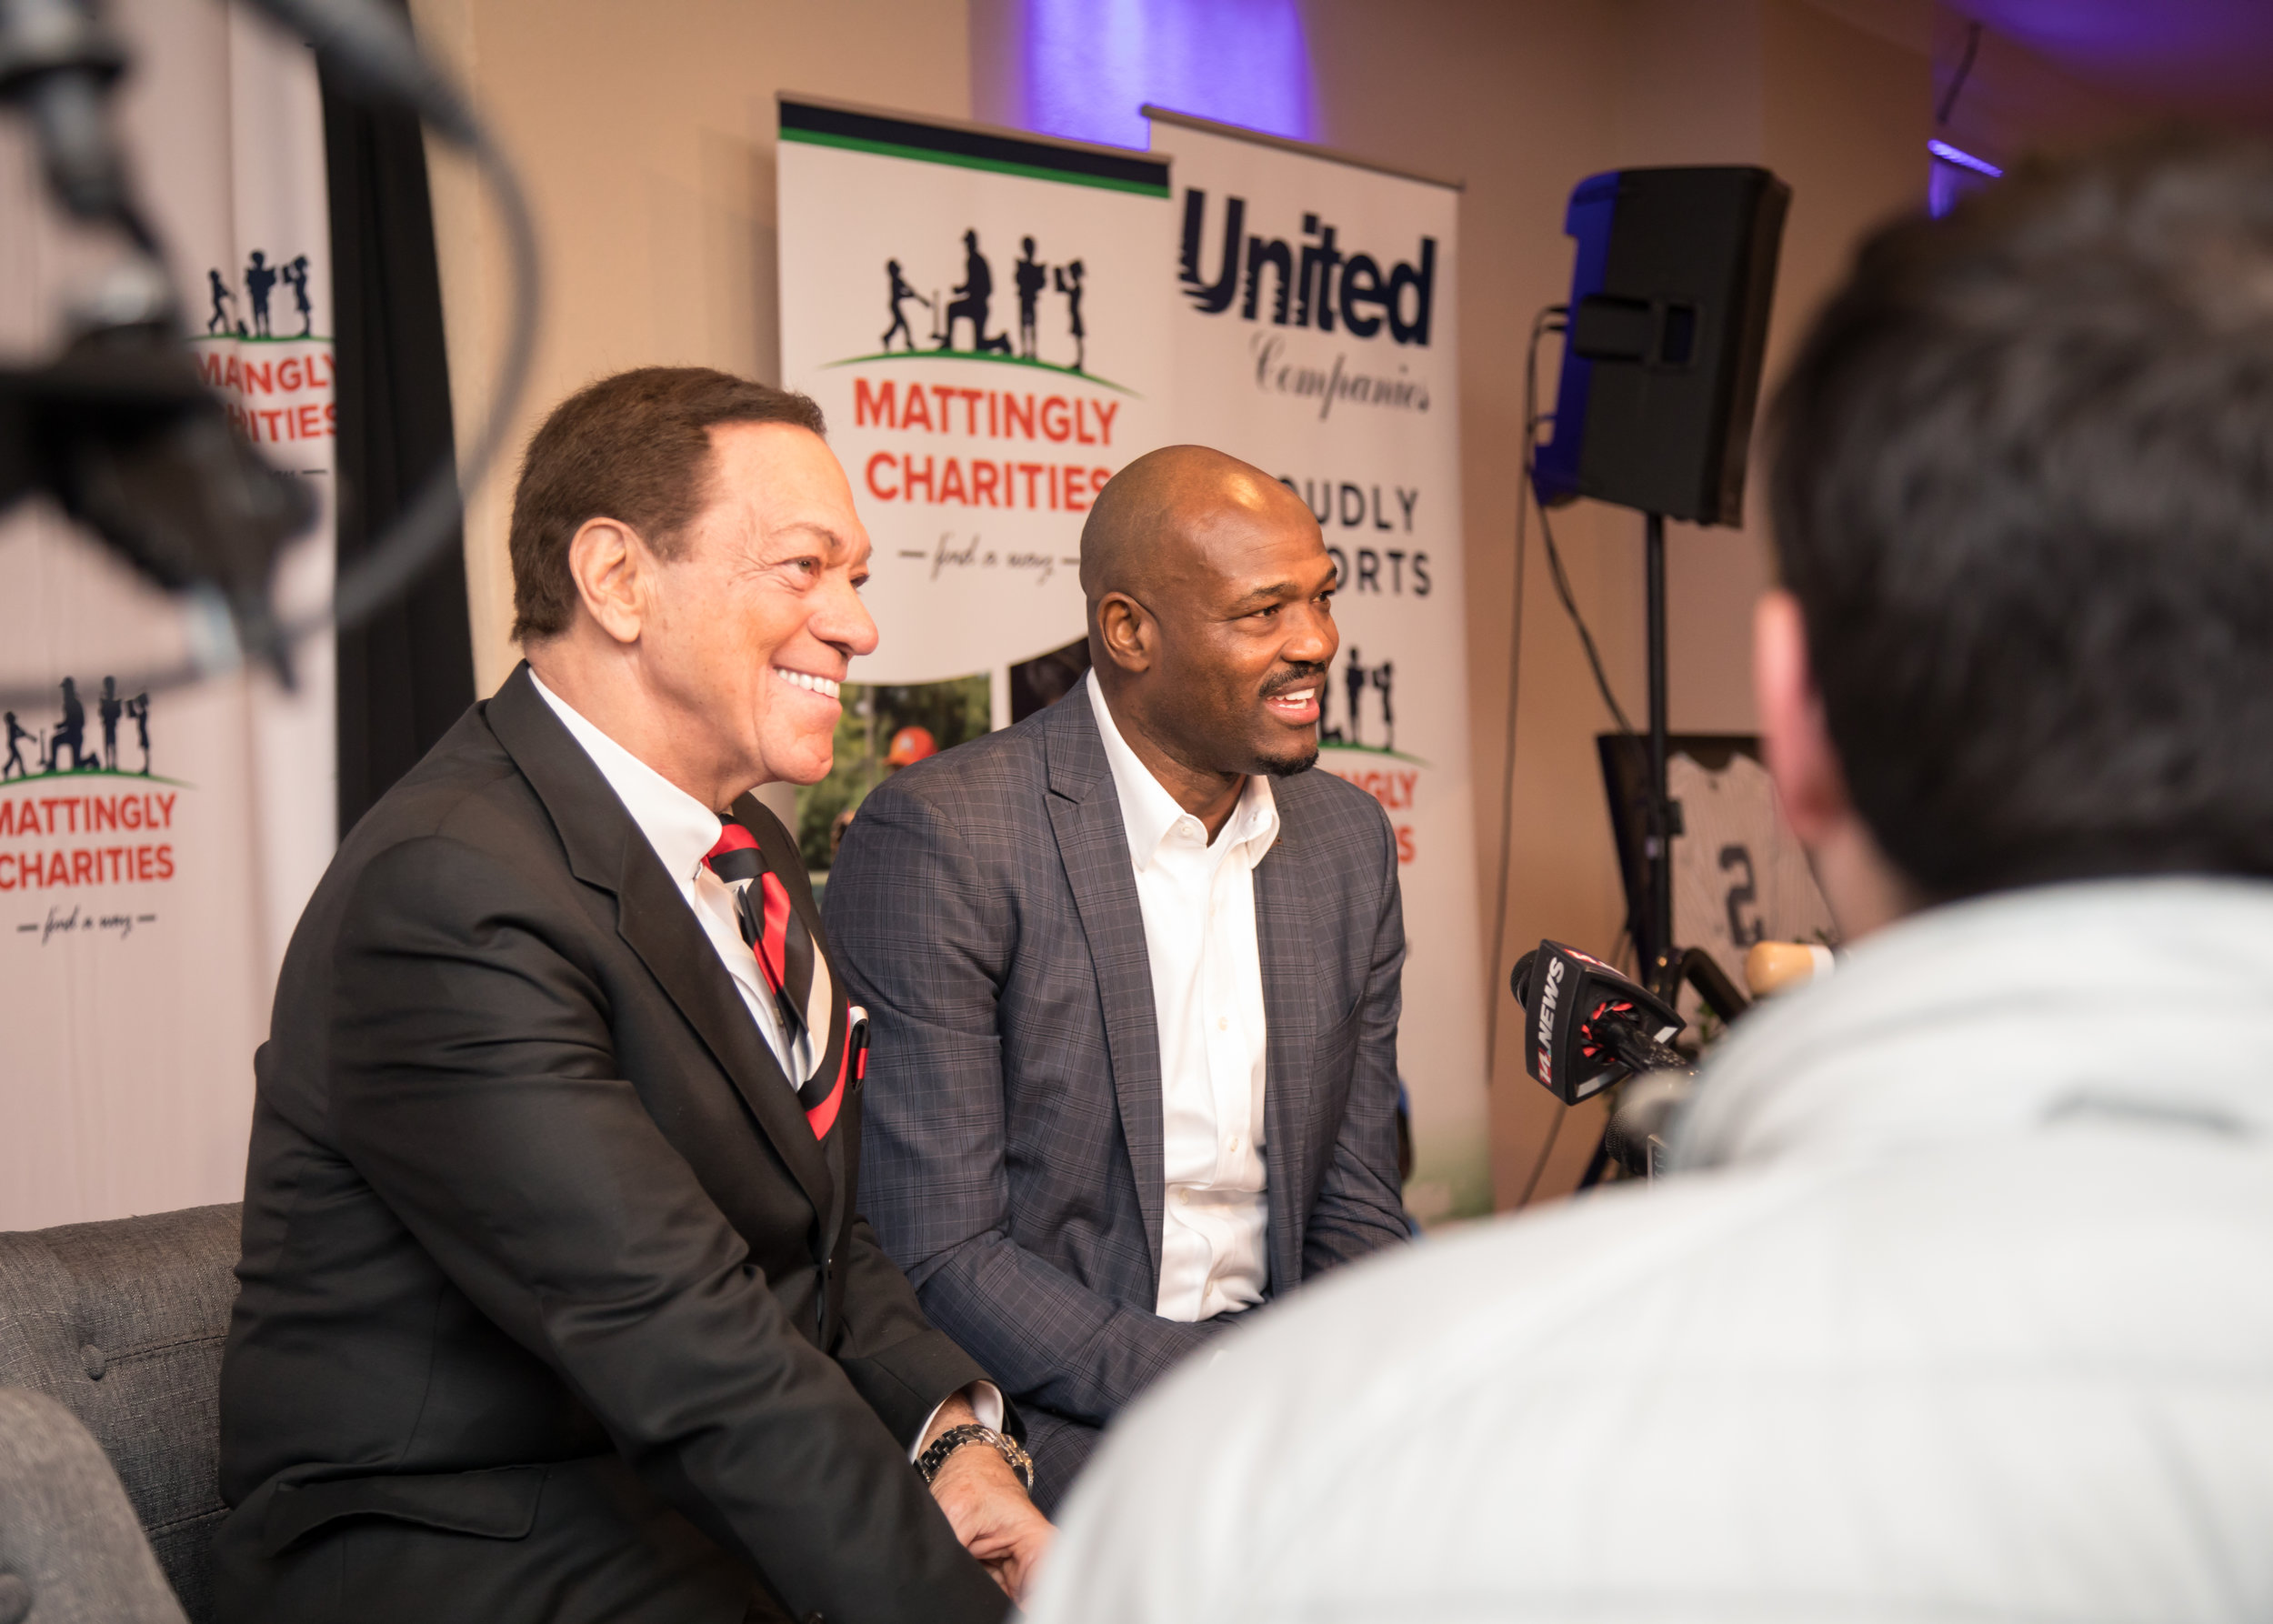 1-10-2019 Mattingly Charity Event-89.jpg